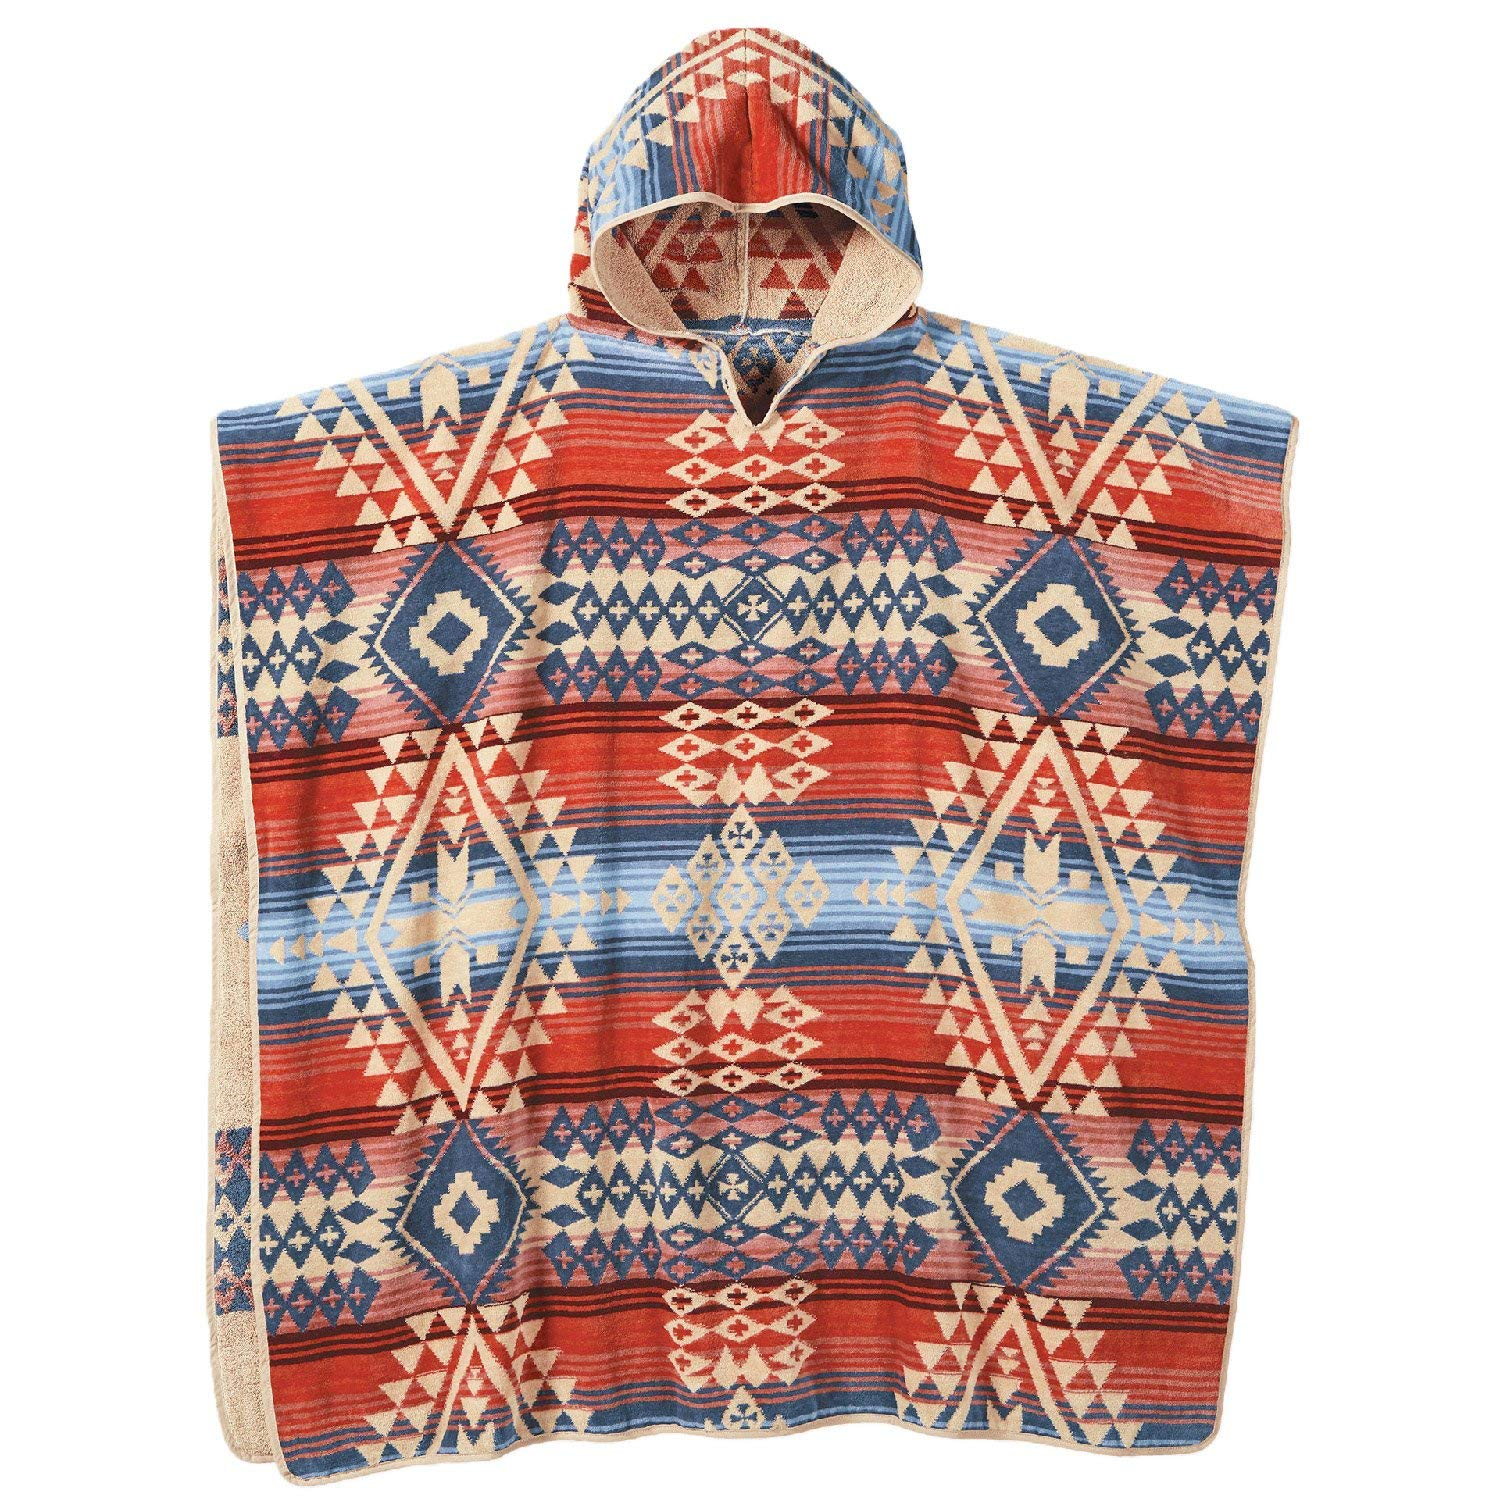 Pendleton Canyonlands Adult Hooded Towel - One Size, Blue